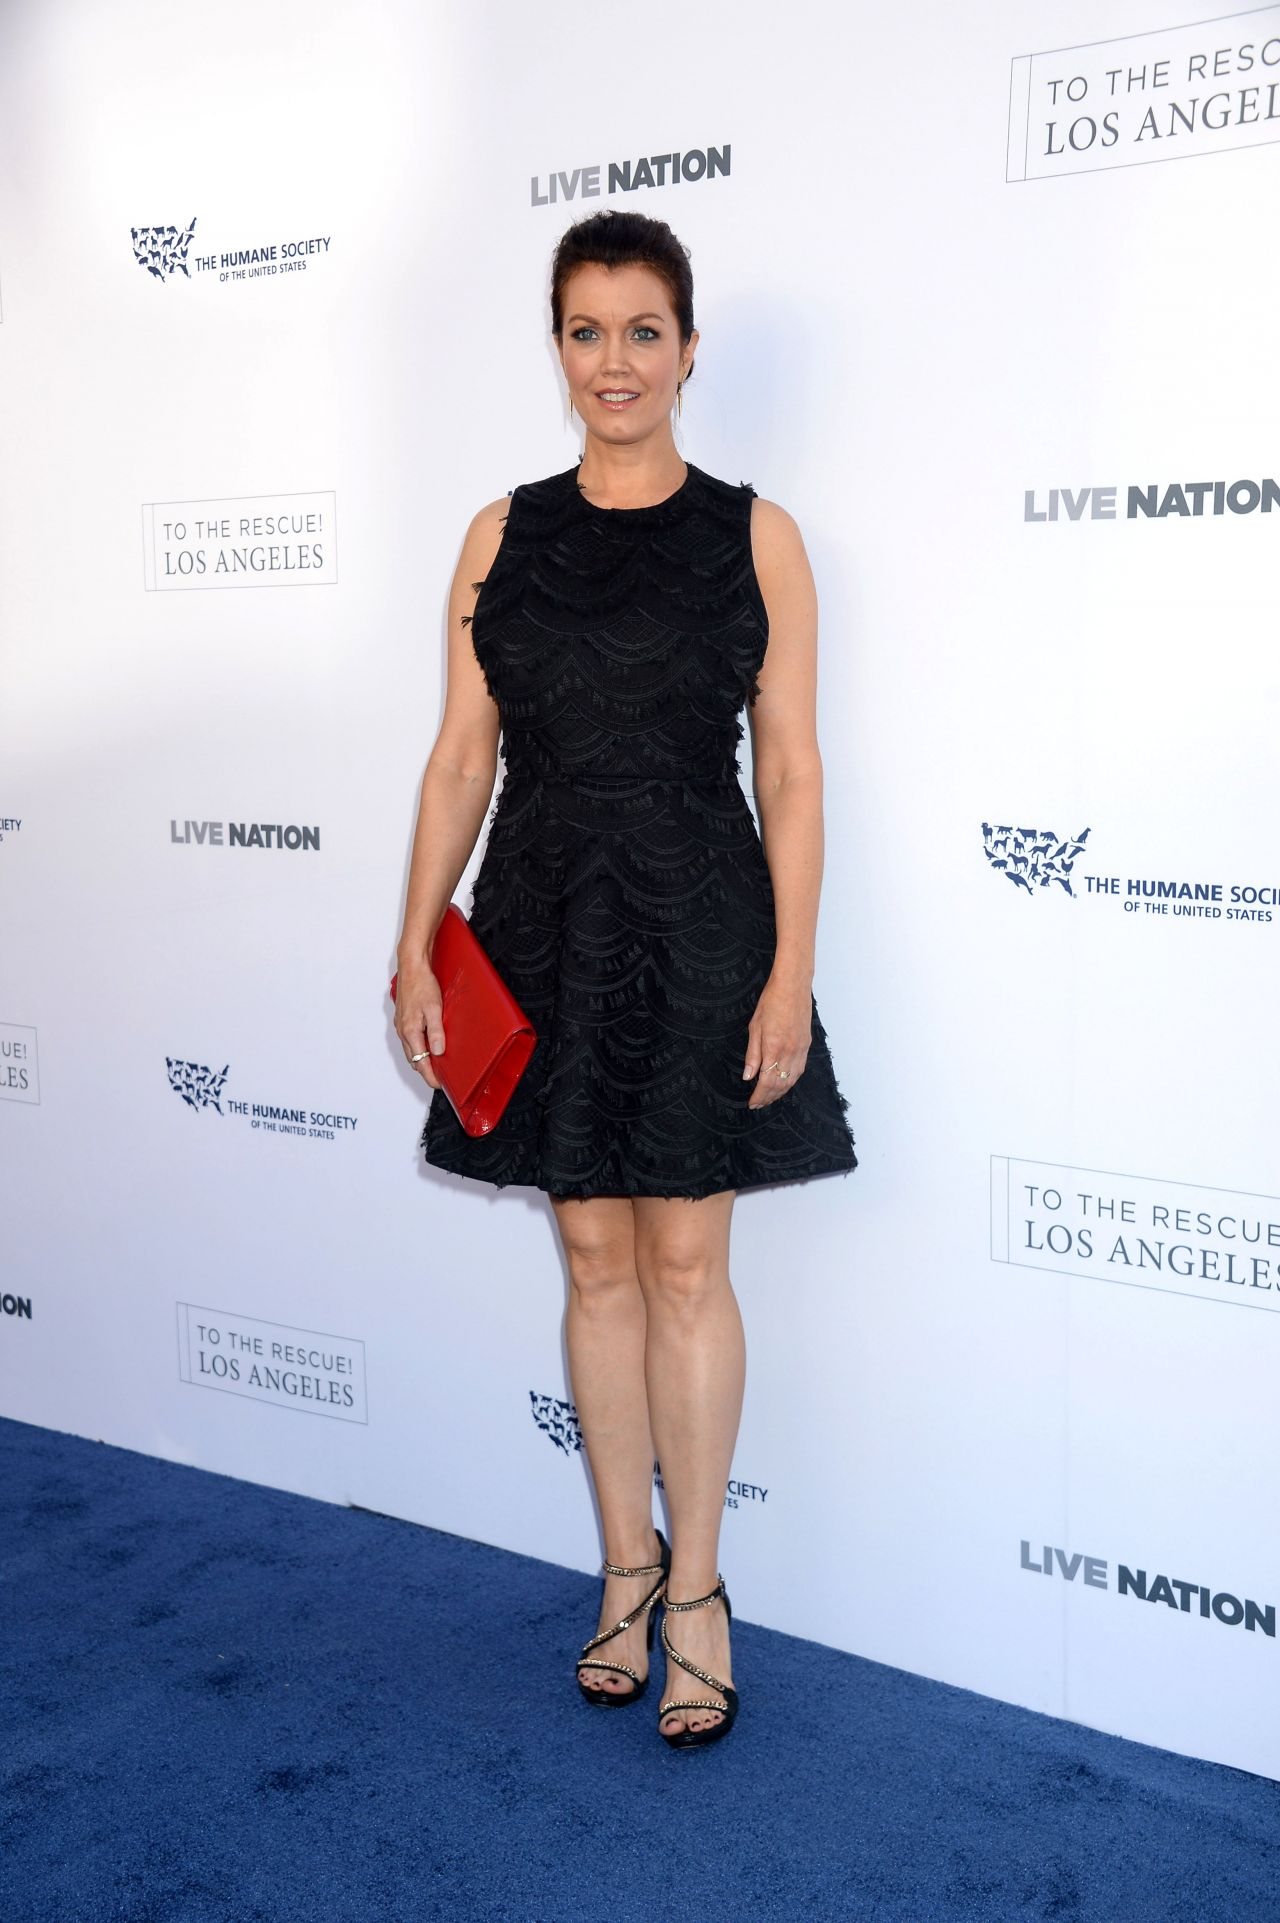 Bellamy Young Quot To The Rescue Quot Fundraising Gala In Los